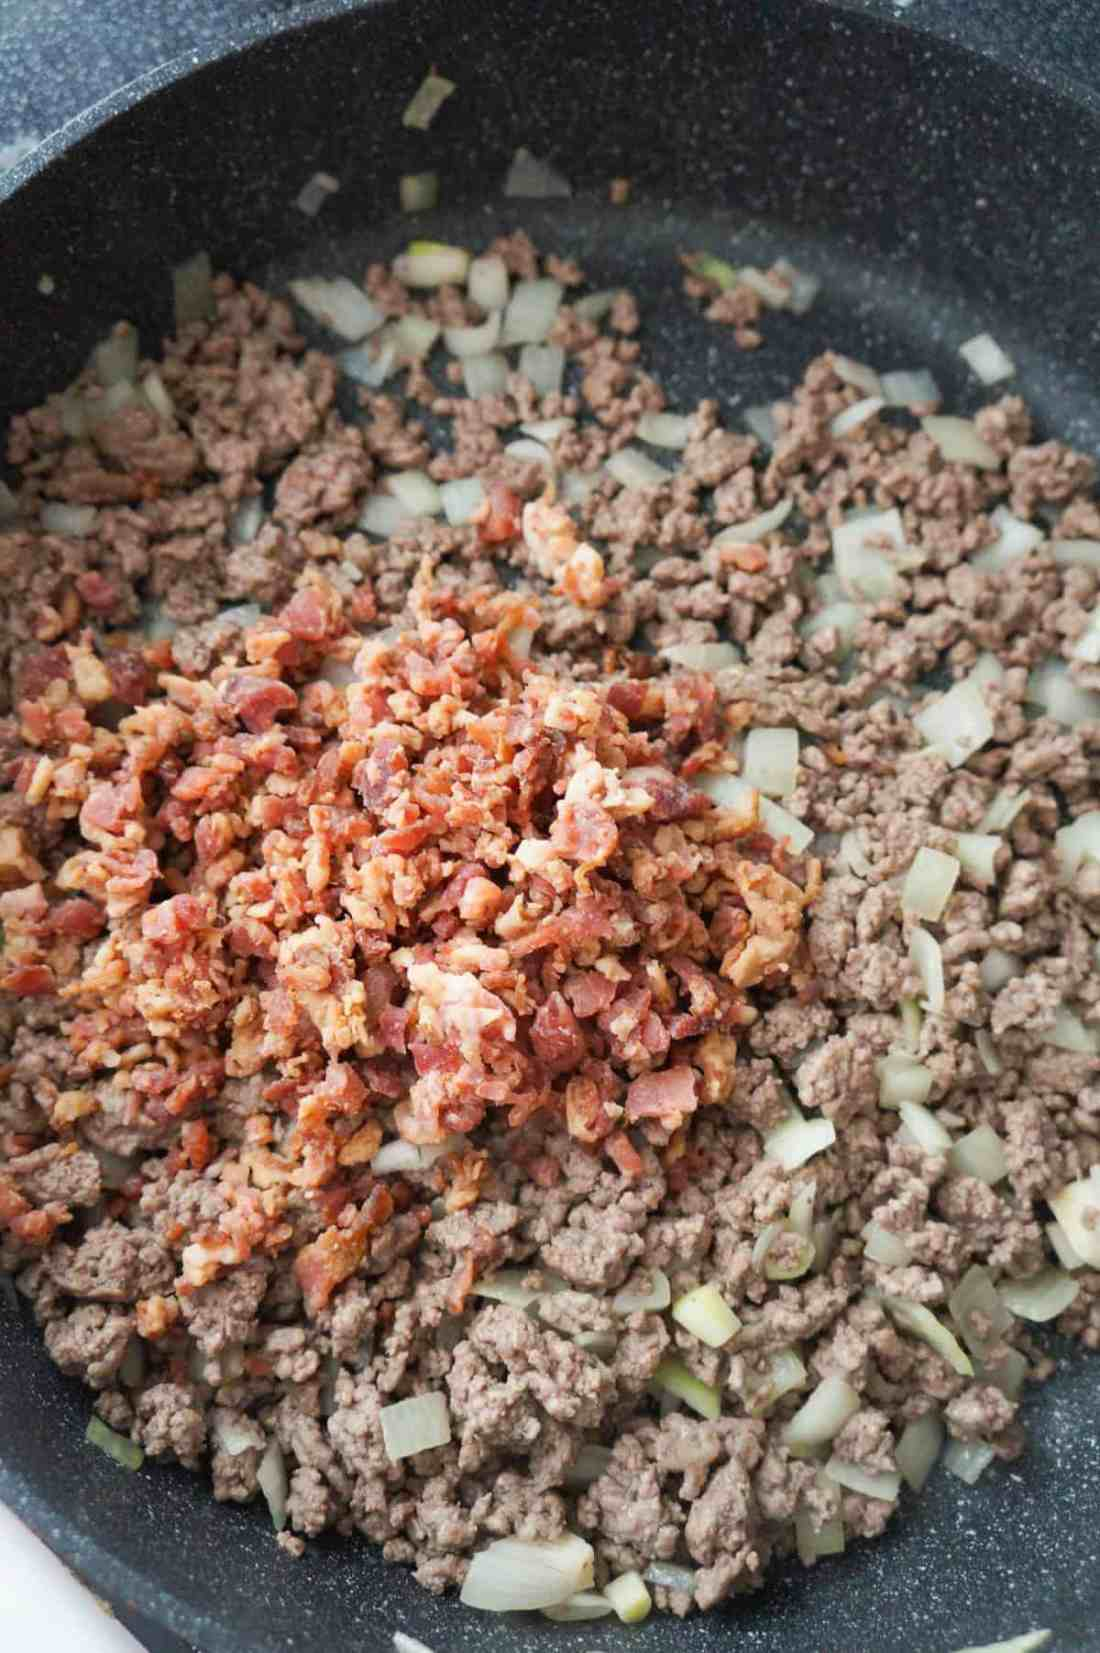 crumbled bacon on top of cooked ground beef and onions in a pan